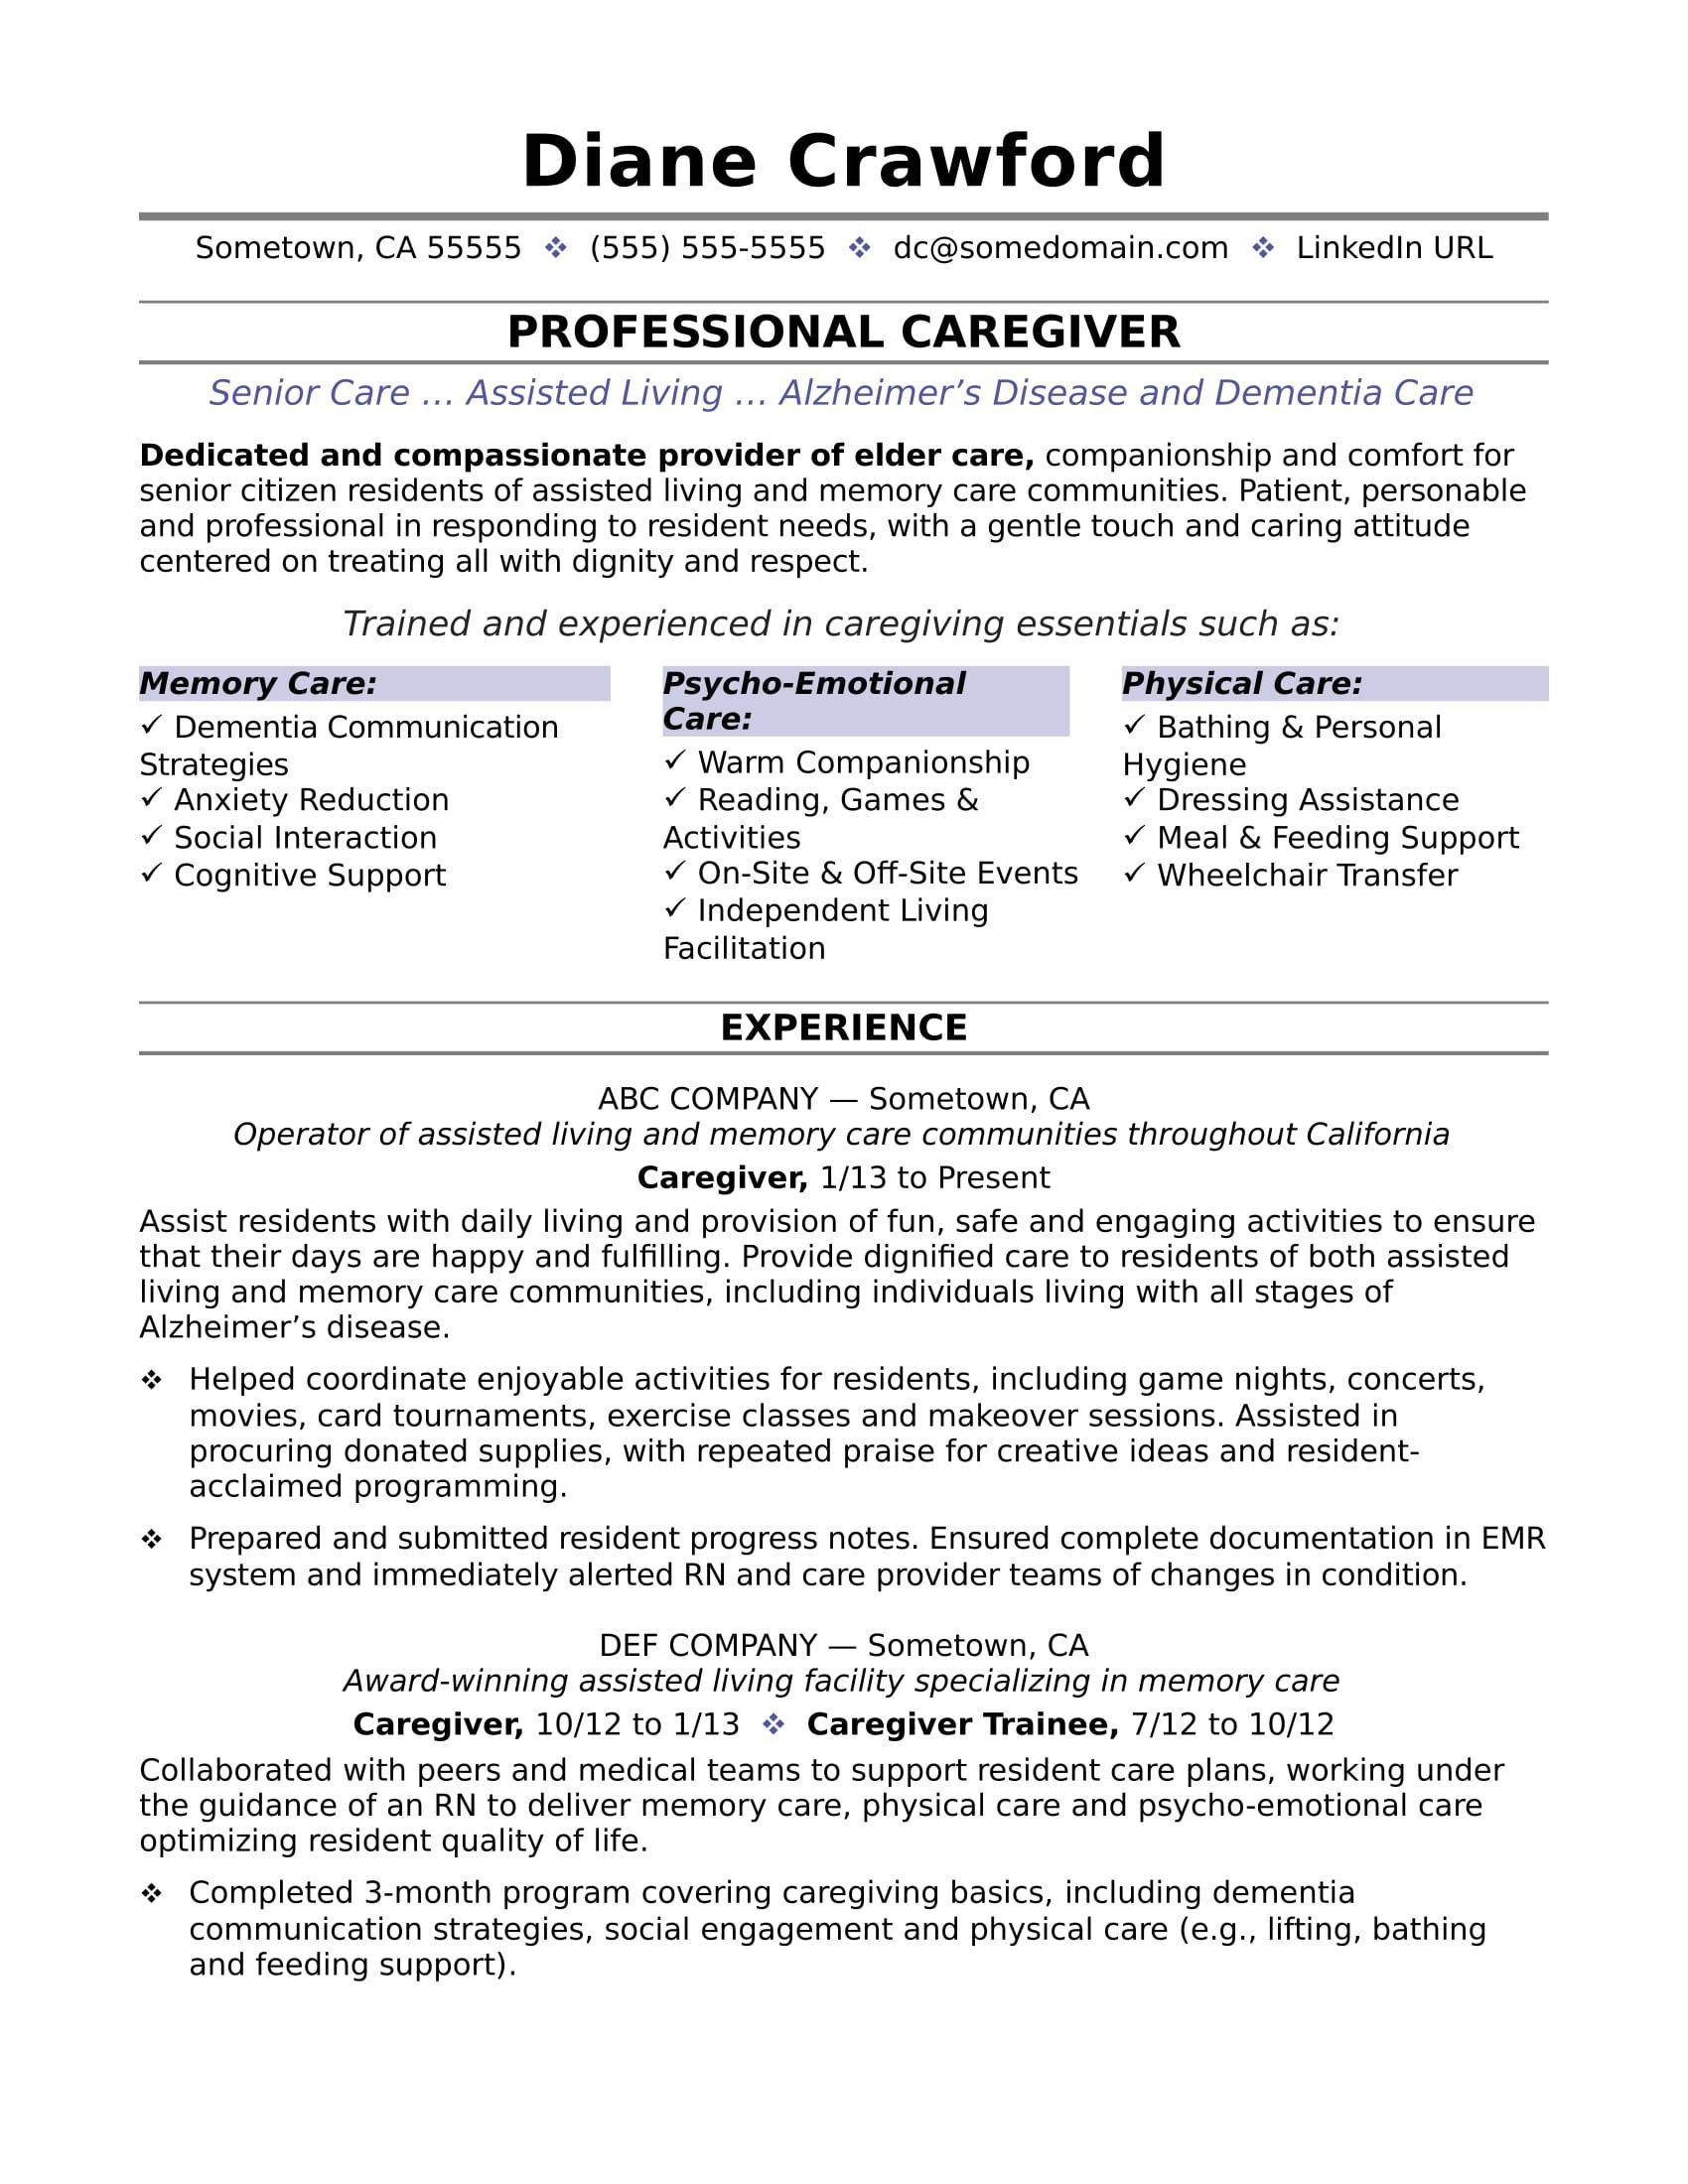 A solid resume can help you land a great job as a